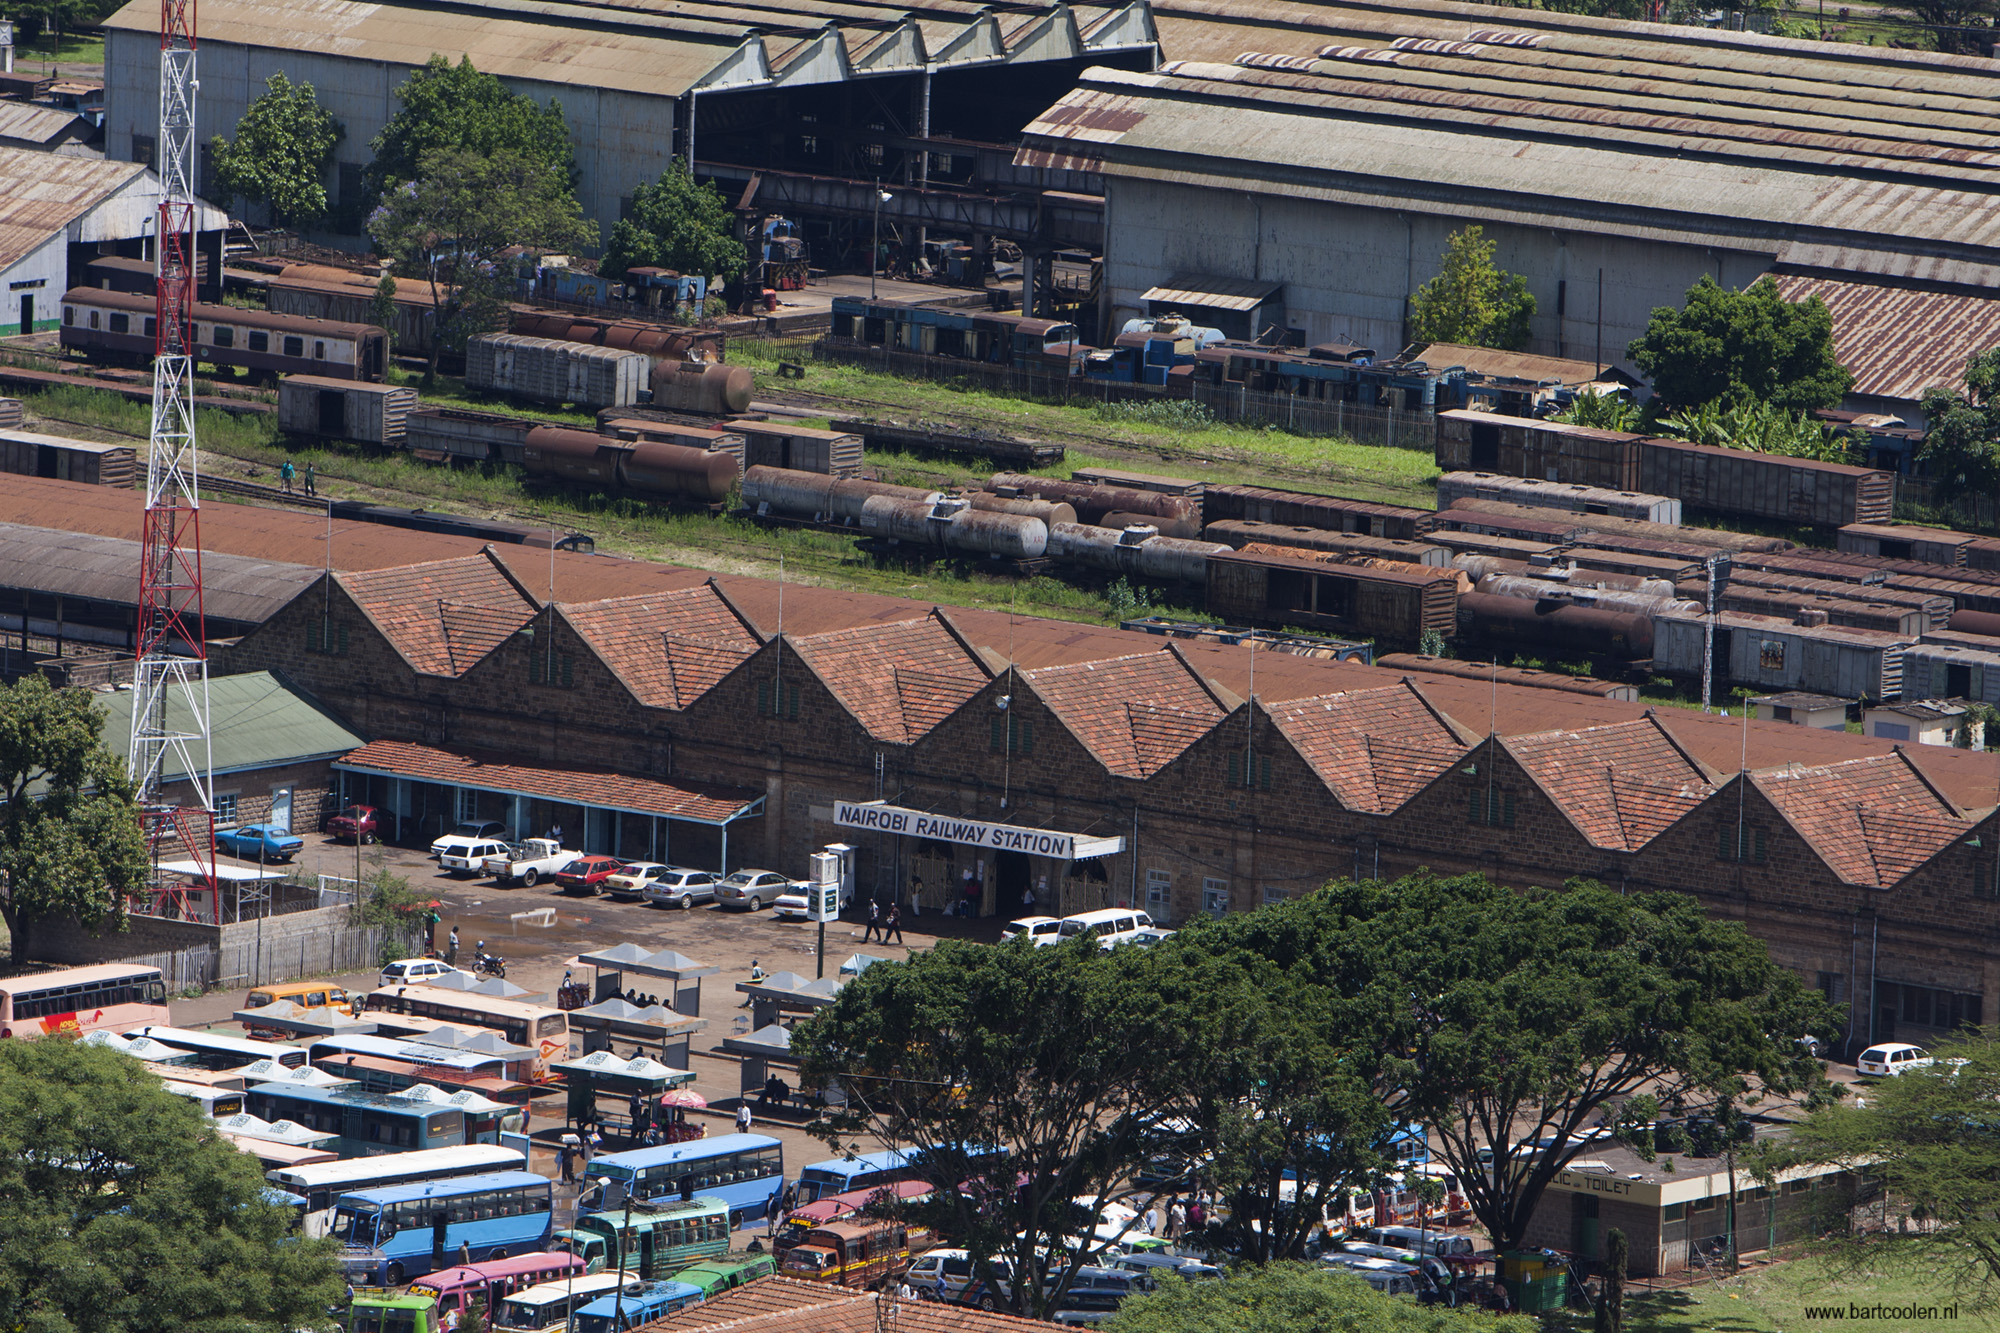 Nairobi-Railway-Station (c) Bart Coolen